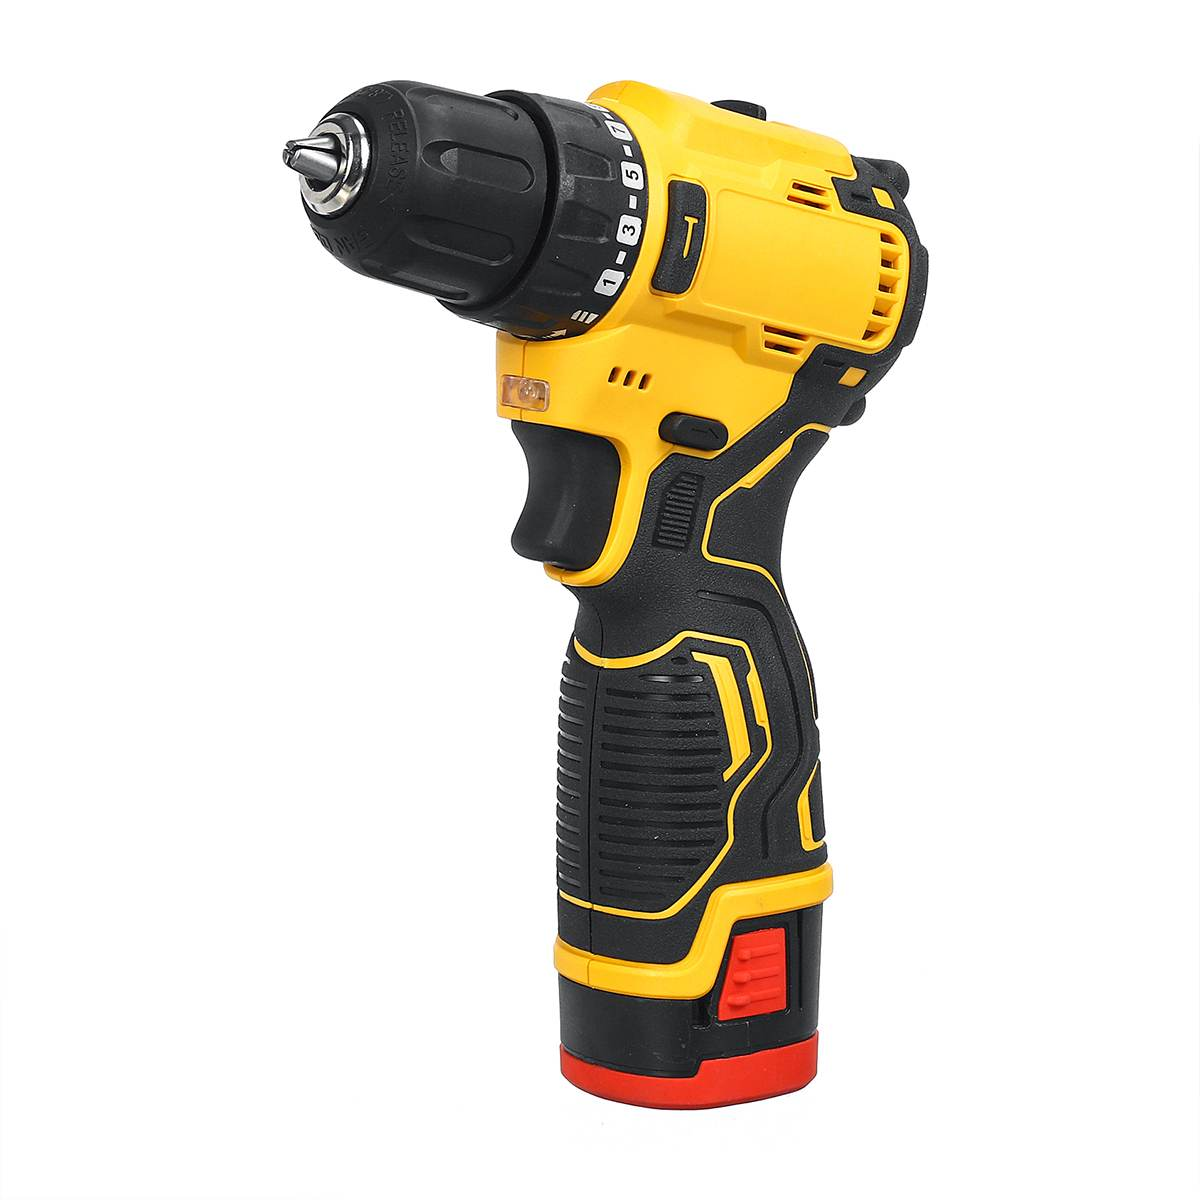 18V Mini Electric Screwdriver Mini Wireless Driver With Lithium-Ion Battery Cordless Drill  Home DIY Power Tools